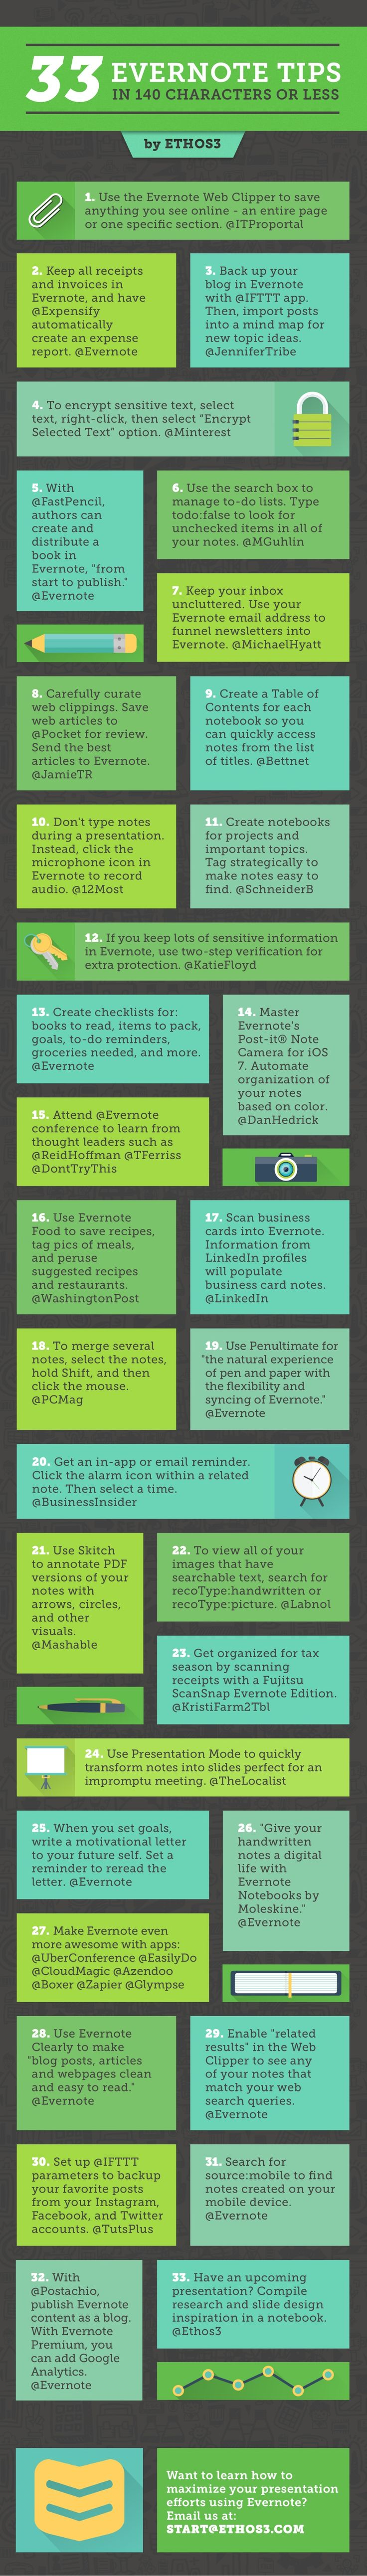 86 best Evernote images on Pinterest